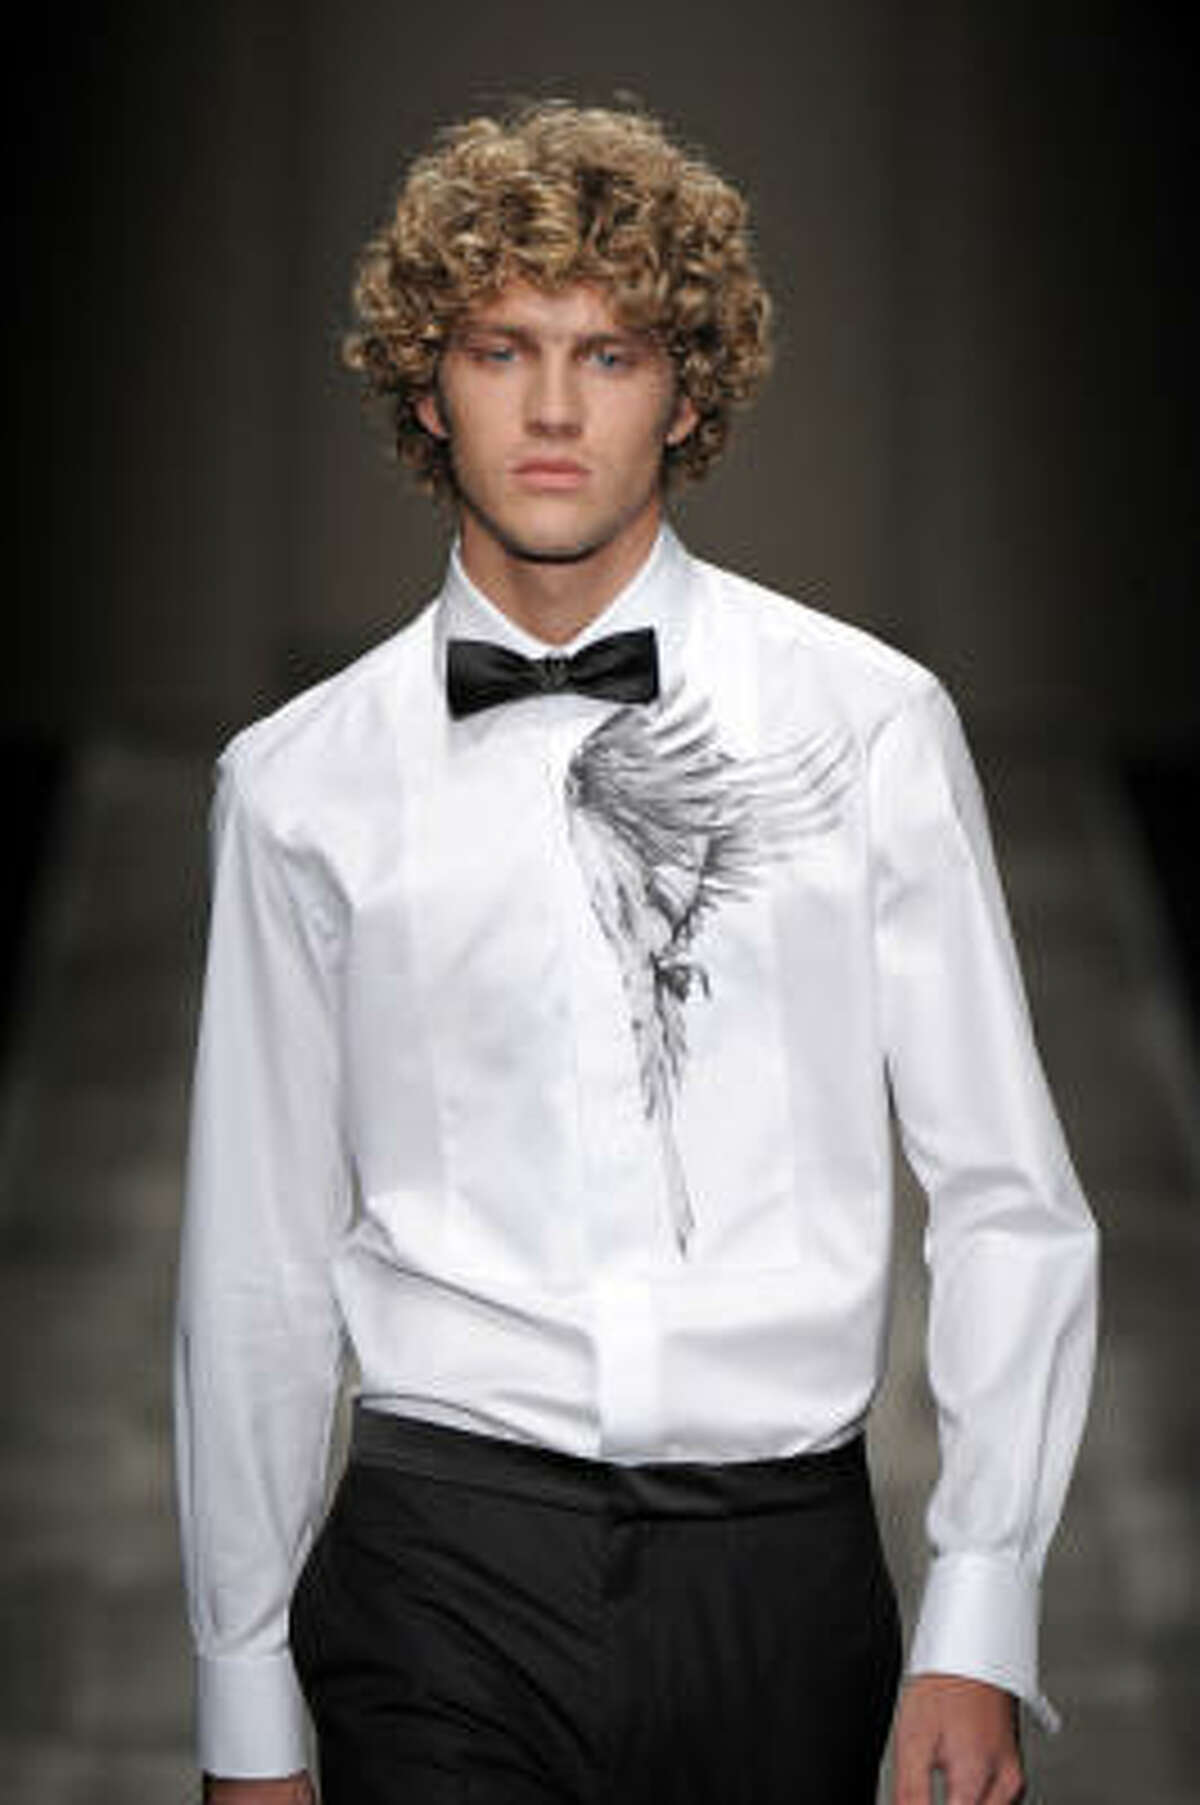 Trussardi's fall 2009 collection features a thinner bow tie.